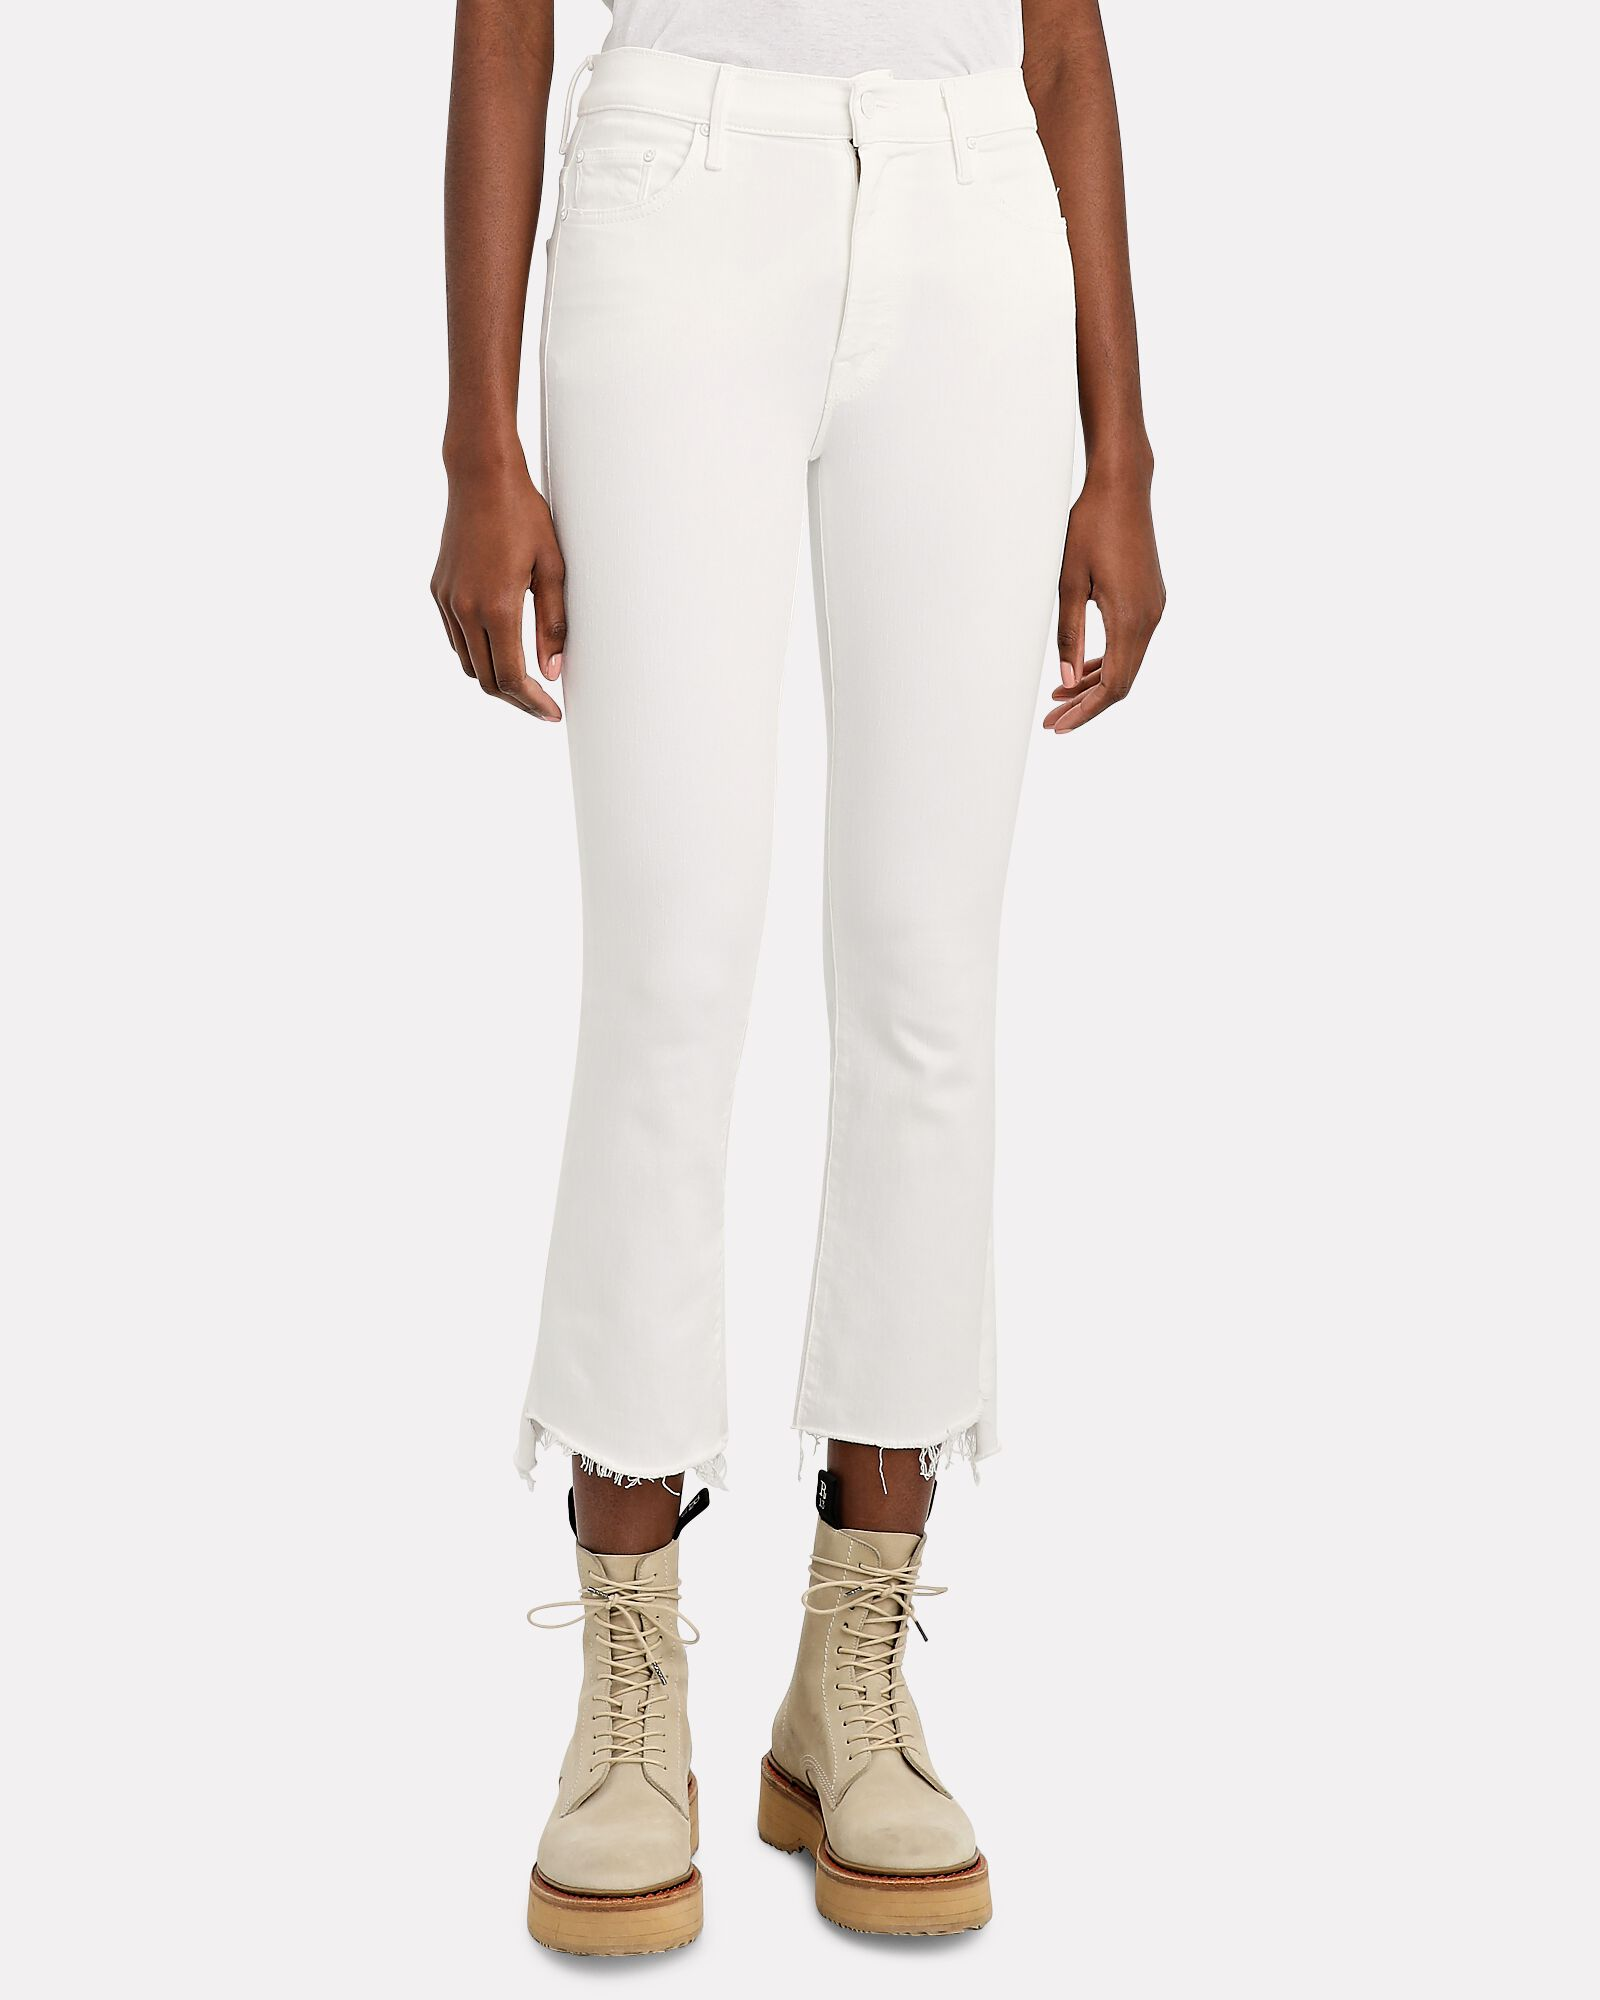 The Insider Crop Step Fray Jeans, FAIREST OF THEM ALL, hi-res